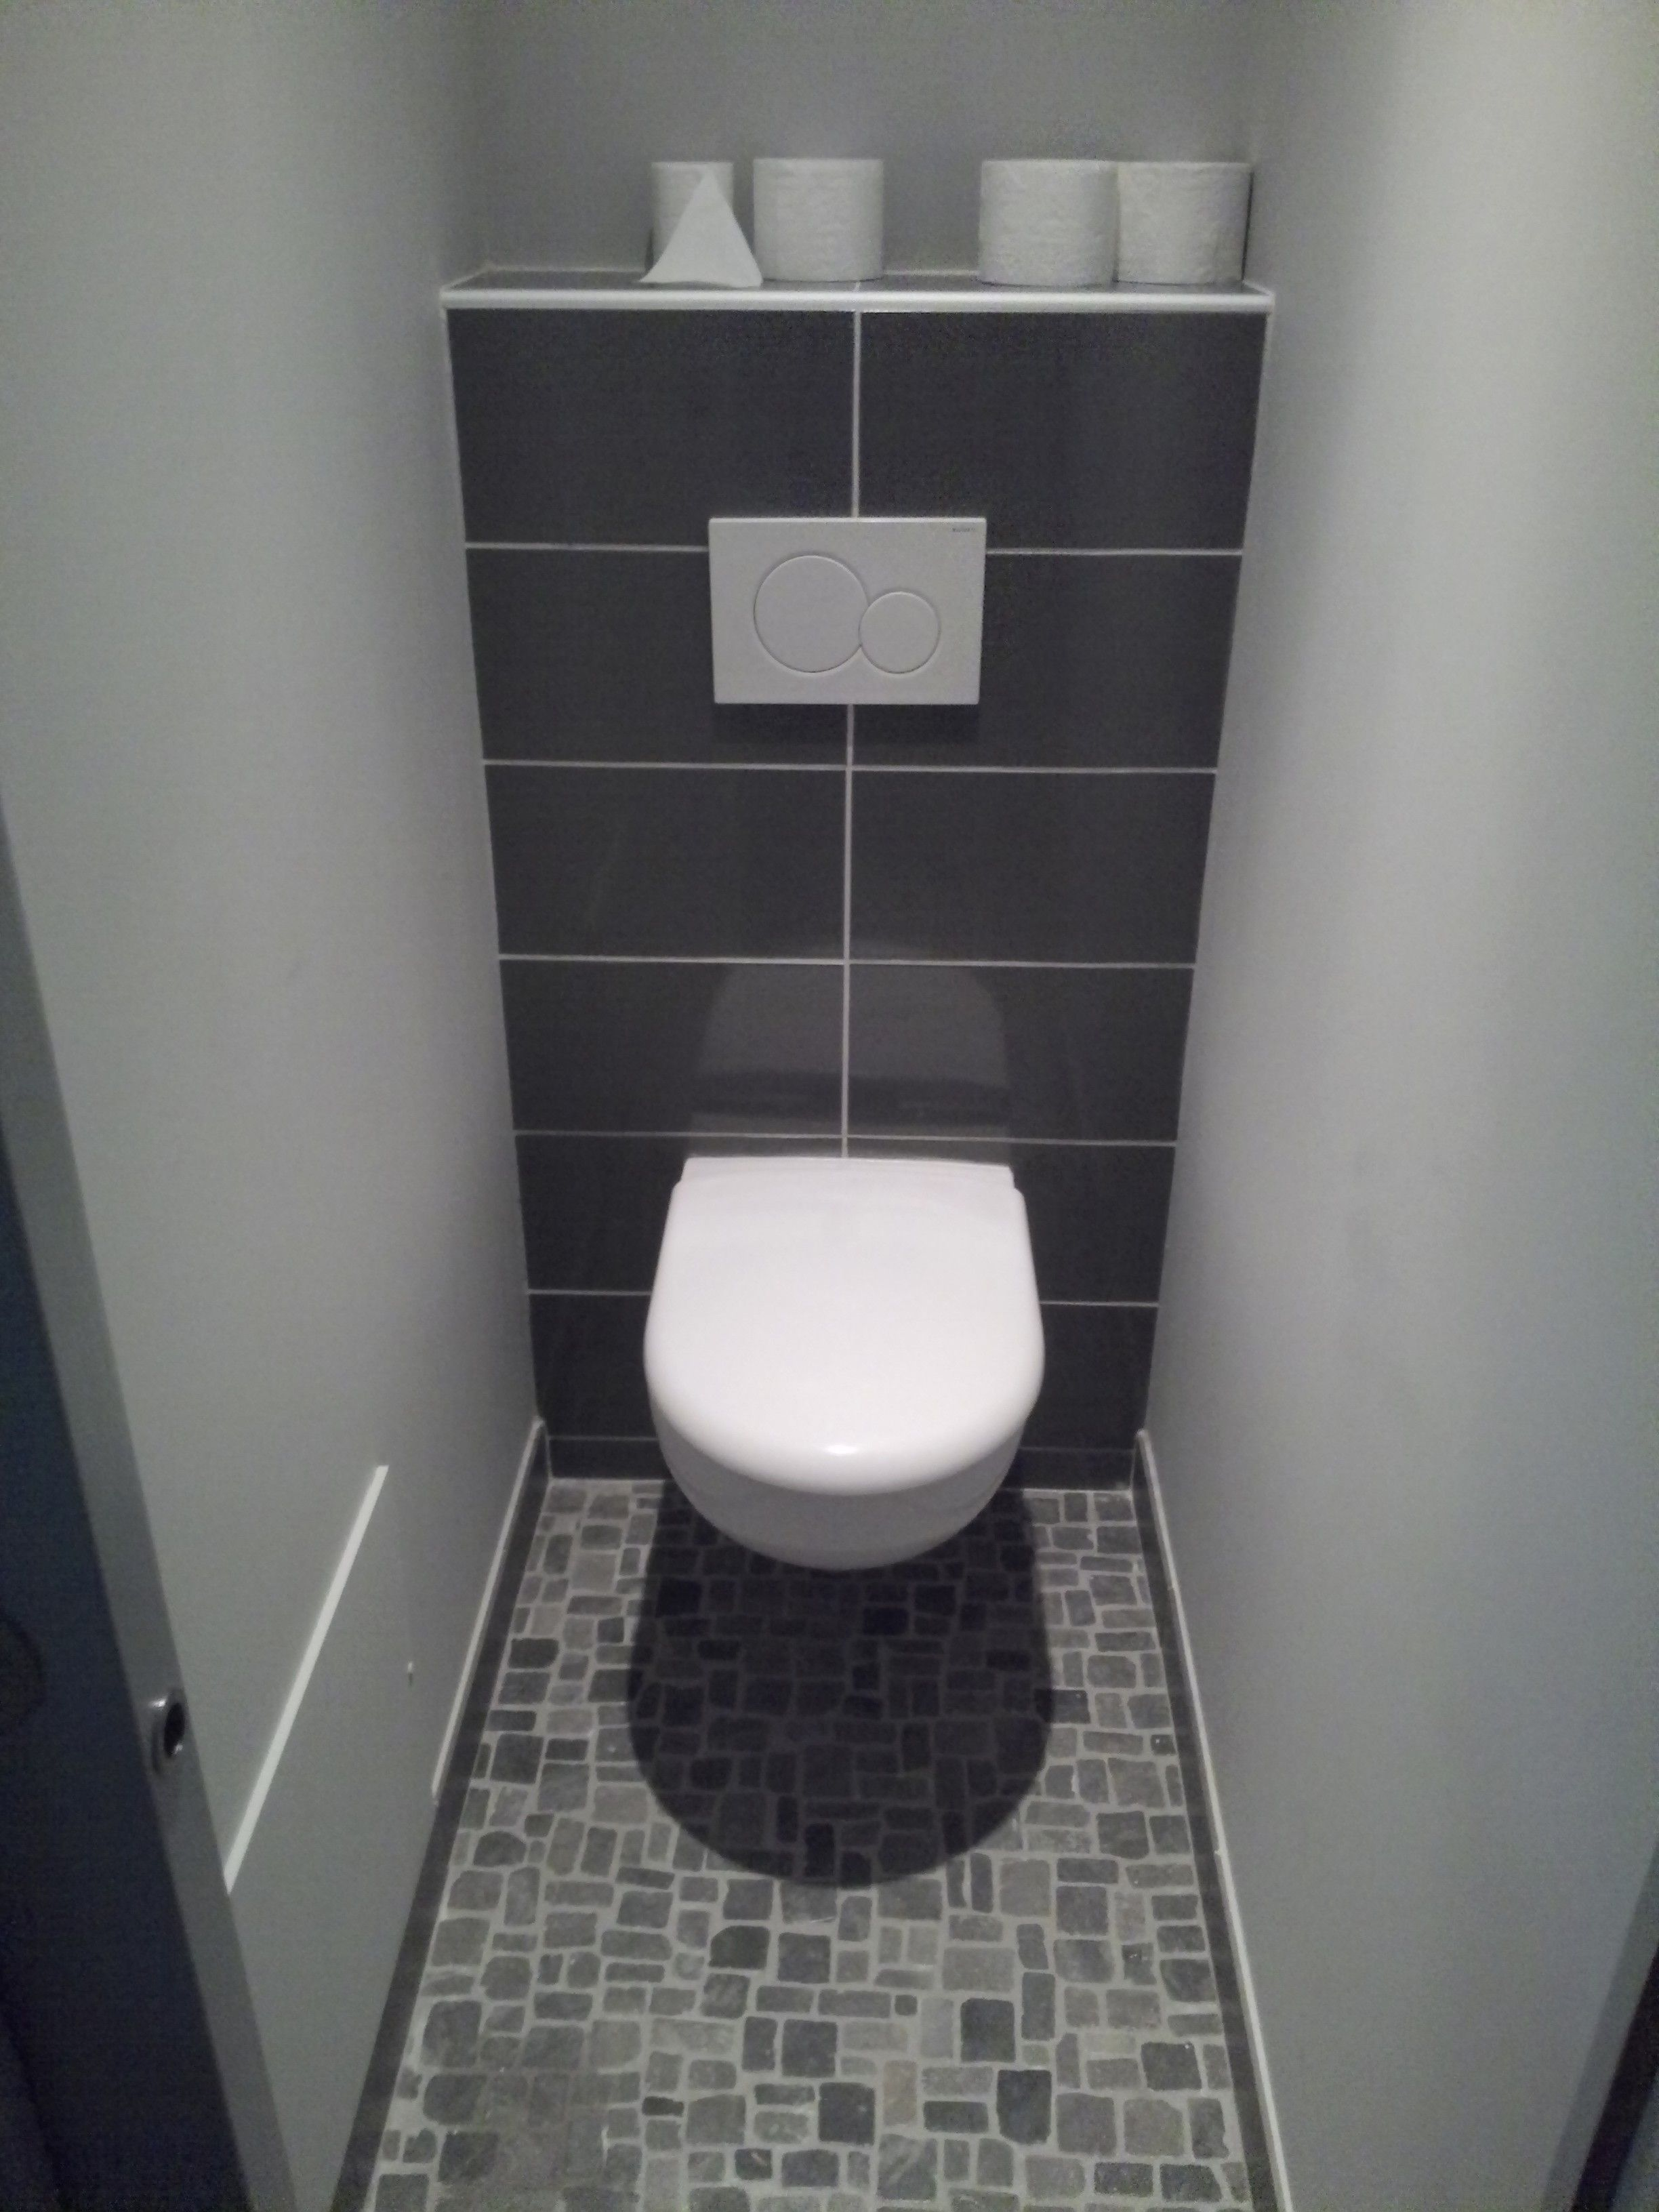 Wc Suspendu Decoration Of Idee Deco Carrelage Salle De Bain Gris Buscar Con Google